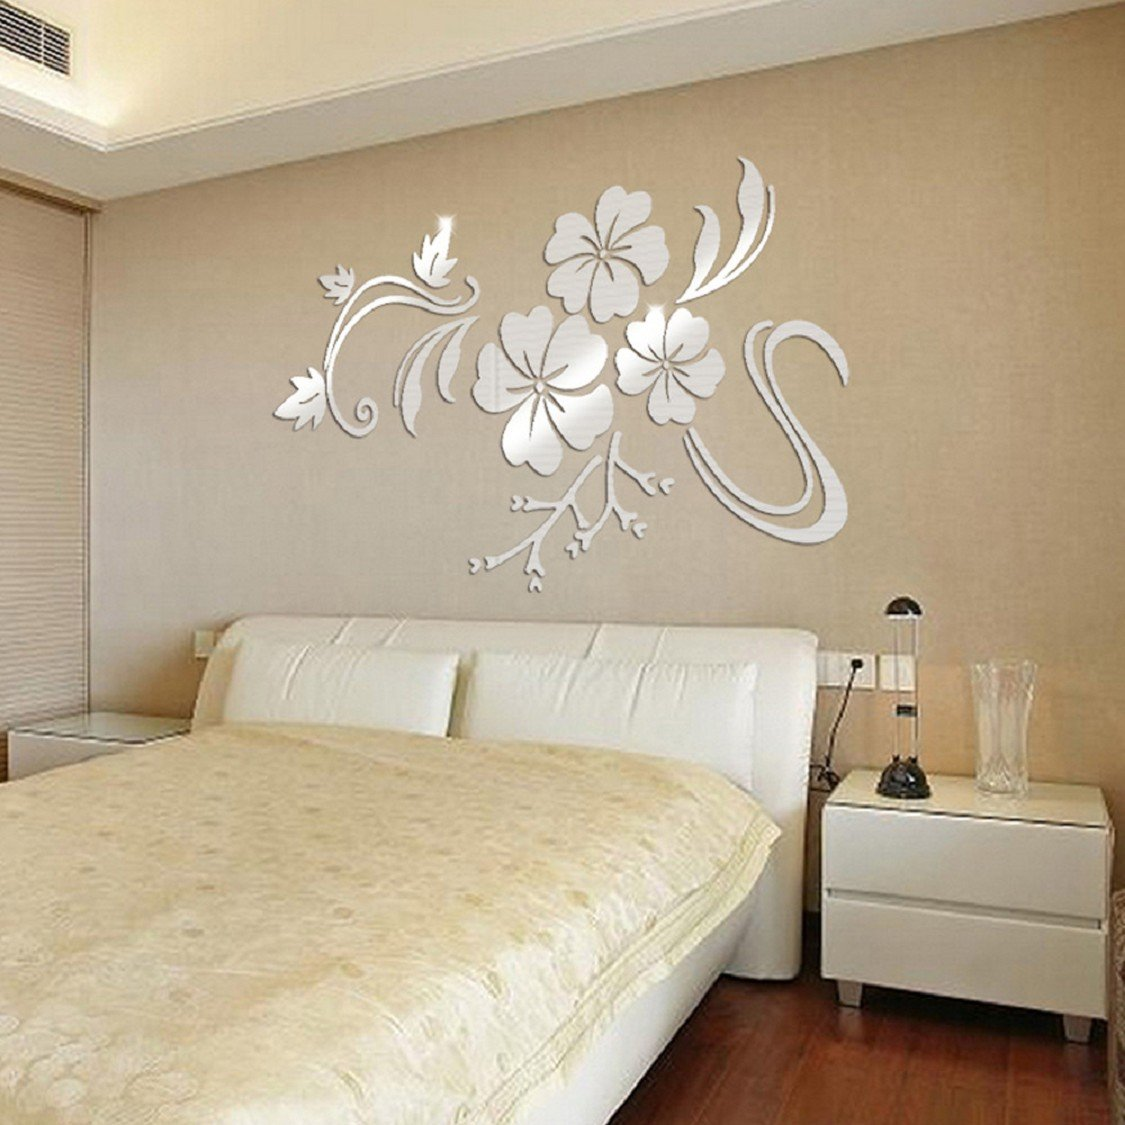 Nice Ikevan 1Set Acrylic Art 3D Mirror Flower Wall Stickers DIY Home Wall Room Decals  Decor Sofa TV Setting Wall Removable Wall Stickers 78X60cm (Sliver) ...